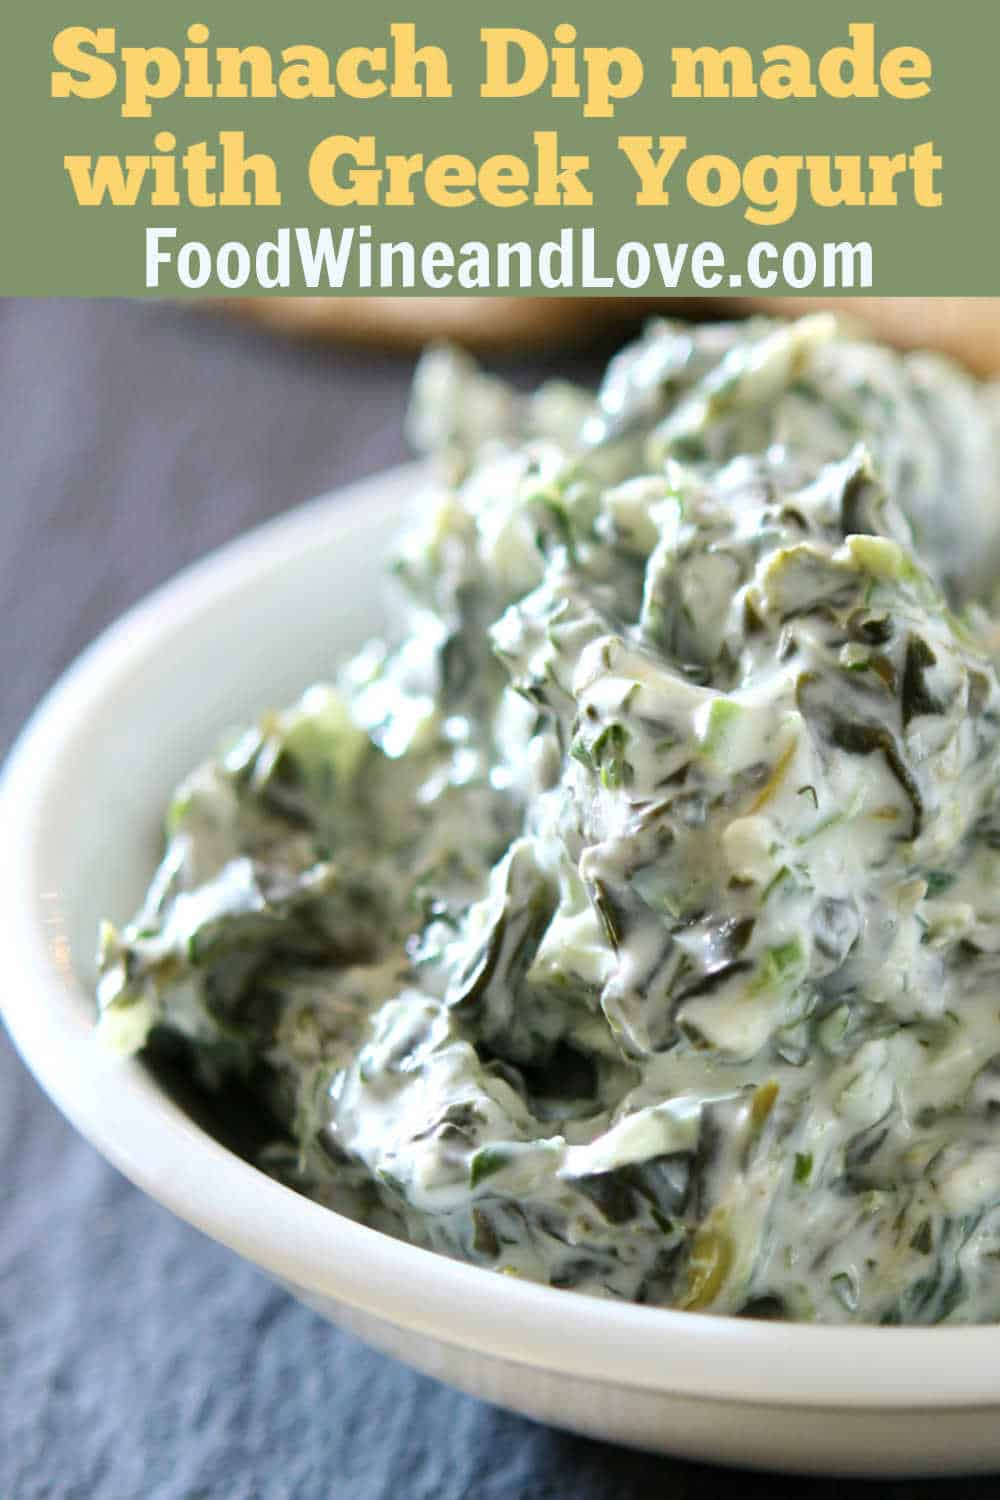 Spinach Dip Made With Greek Yogurt